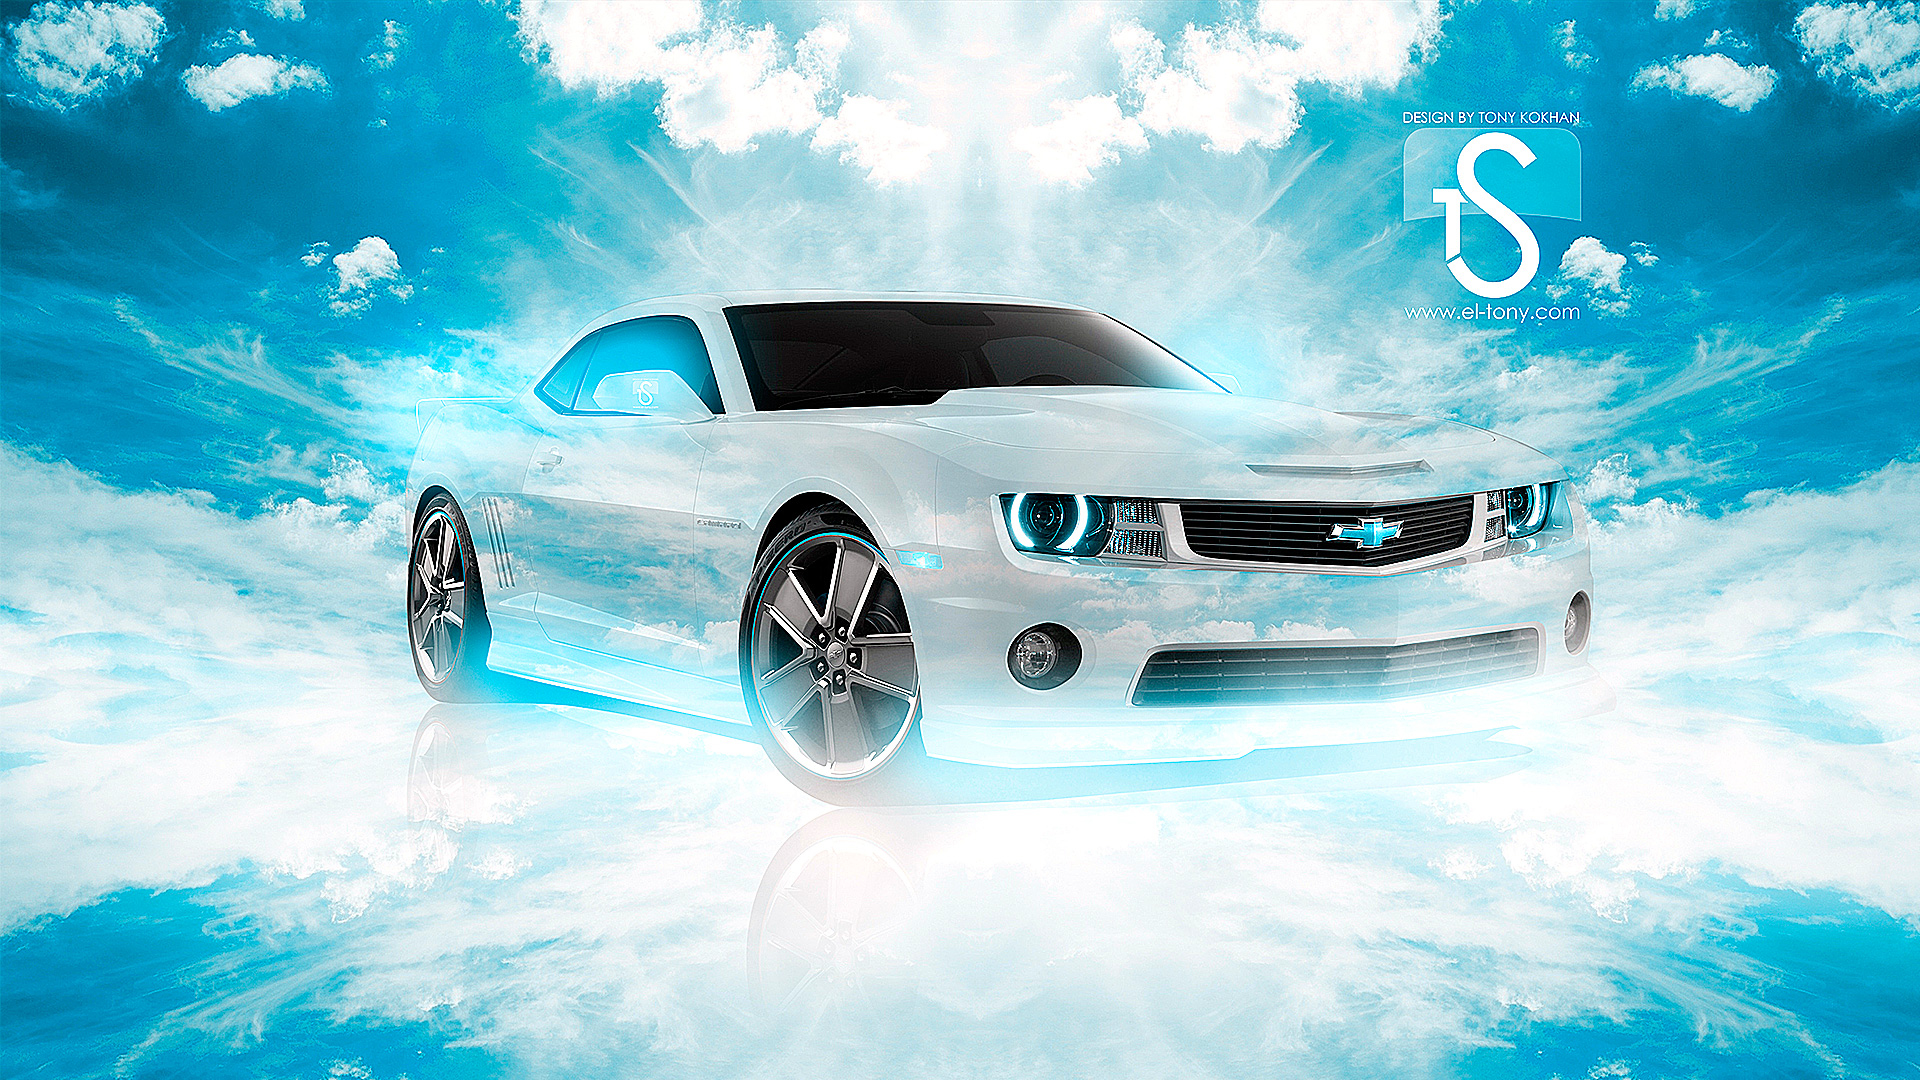 El Tony Sky Cars